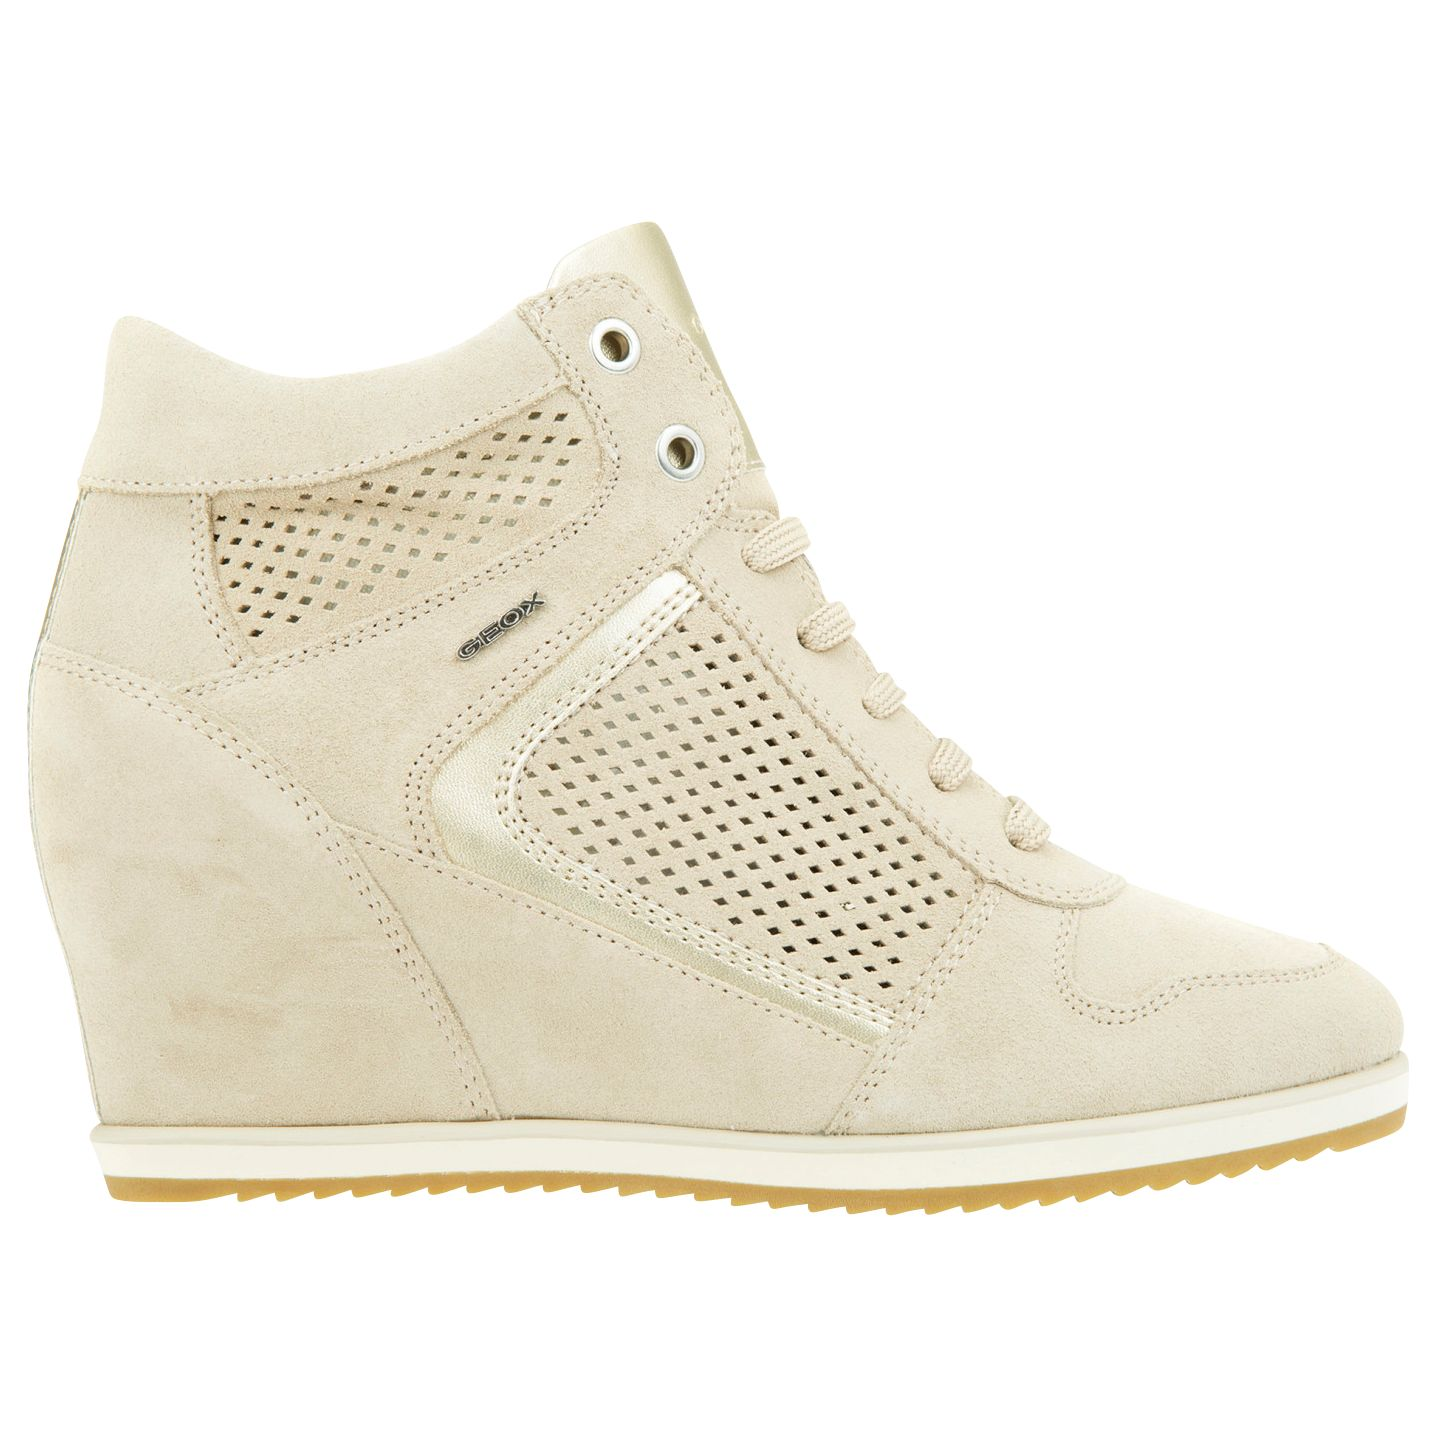 Geox Geox Illusion Hidden Wedge Trainers